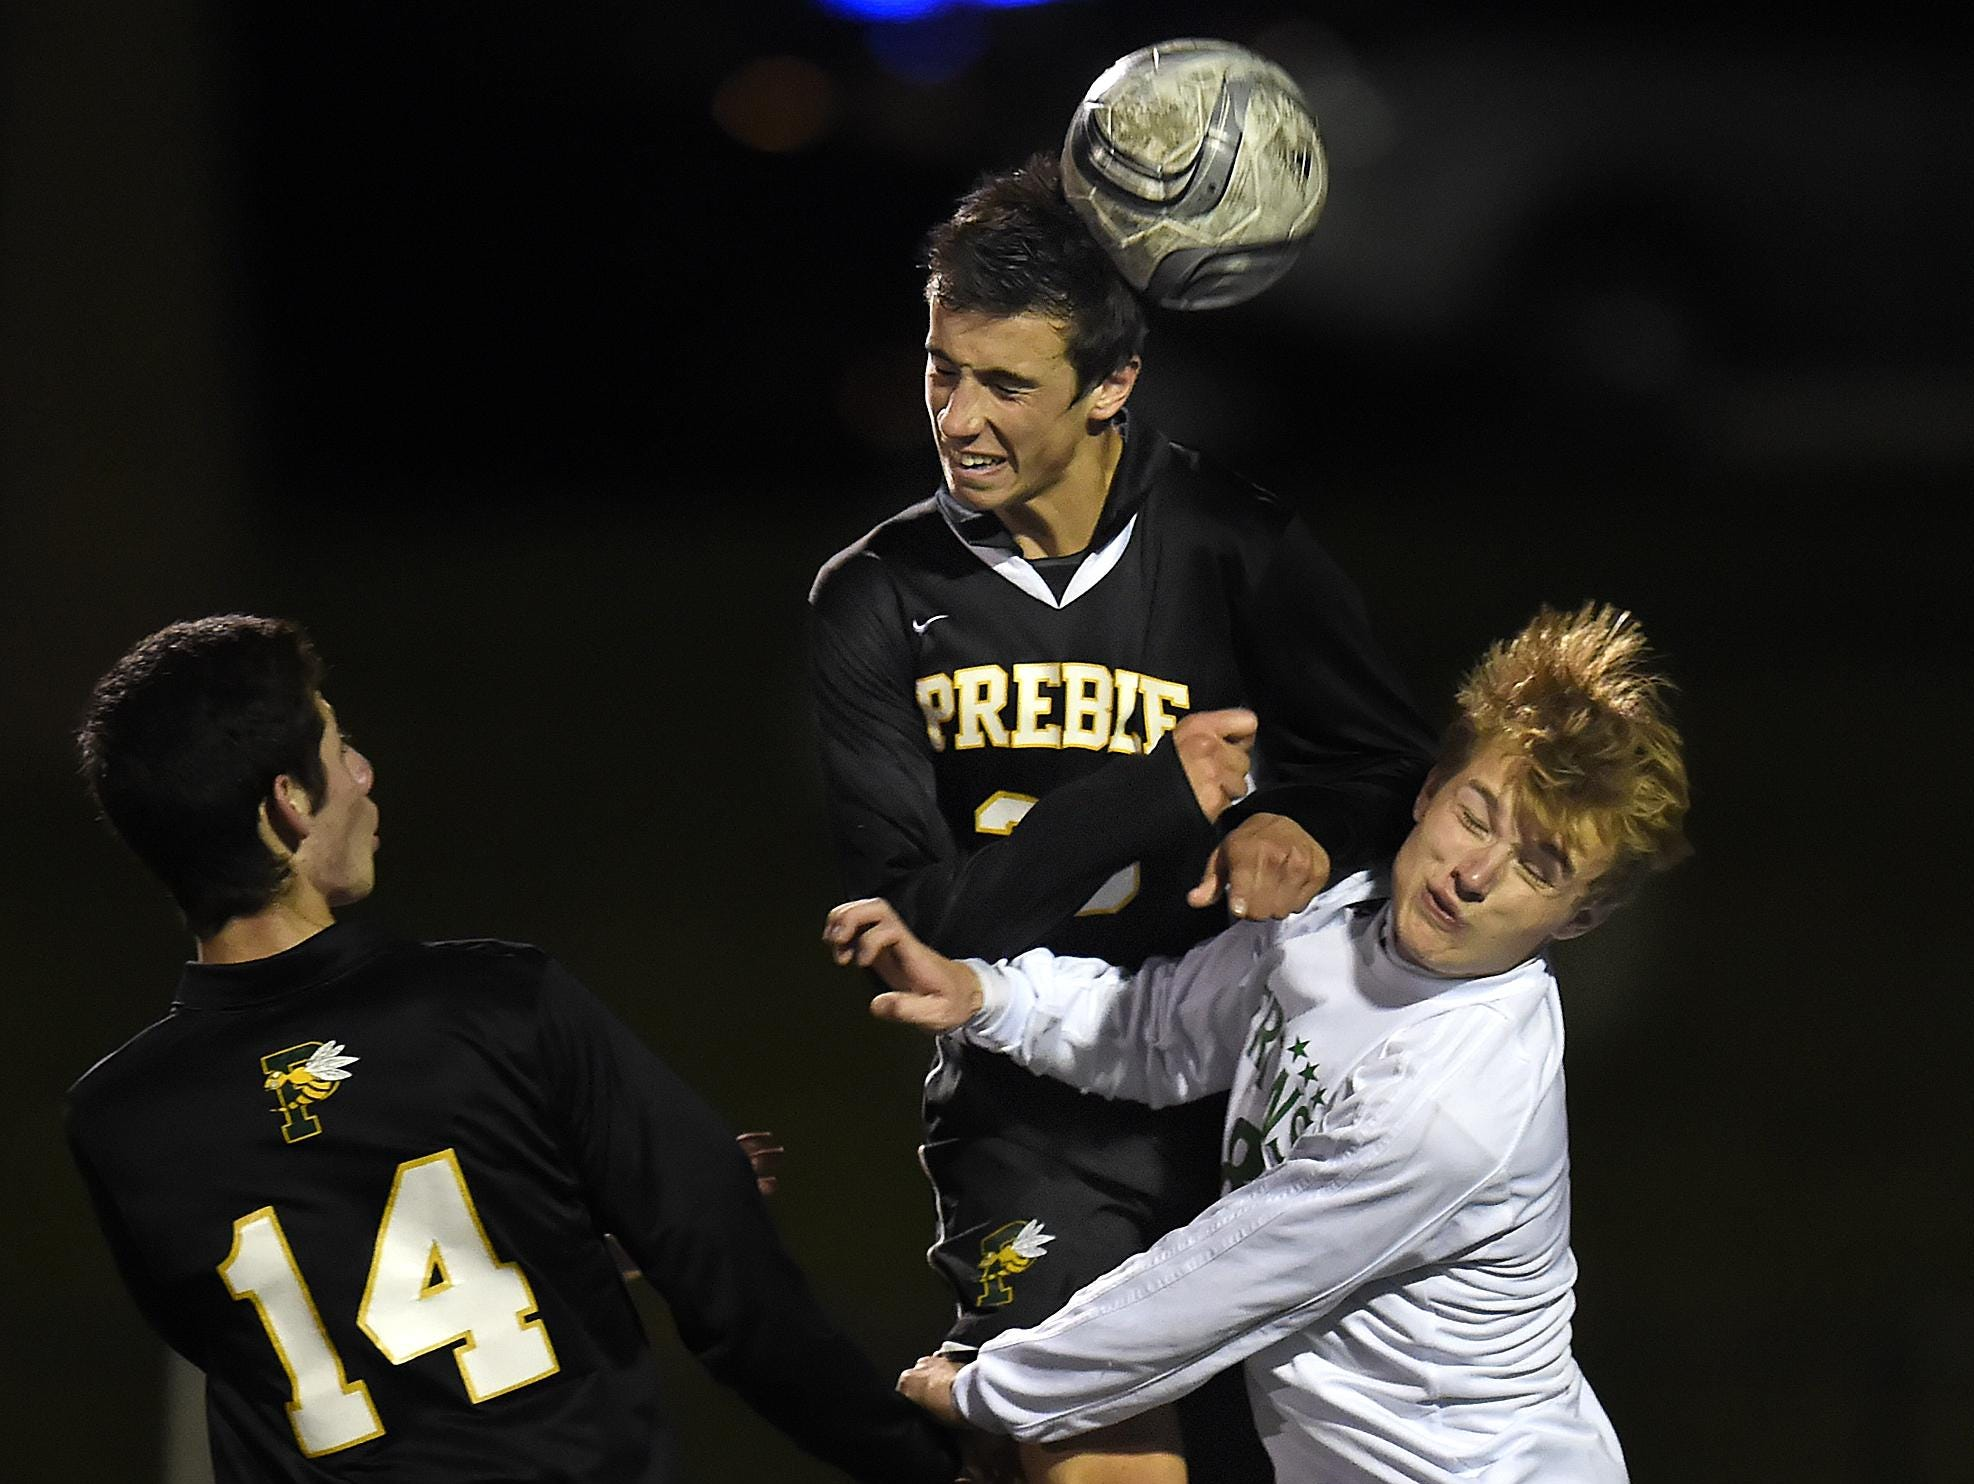 Green Bay Preble's Isaac Putzier, middle, was named the FRCC's offensive player of the year.